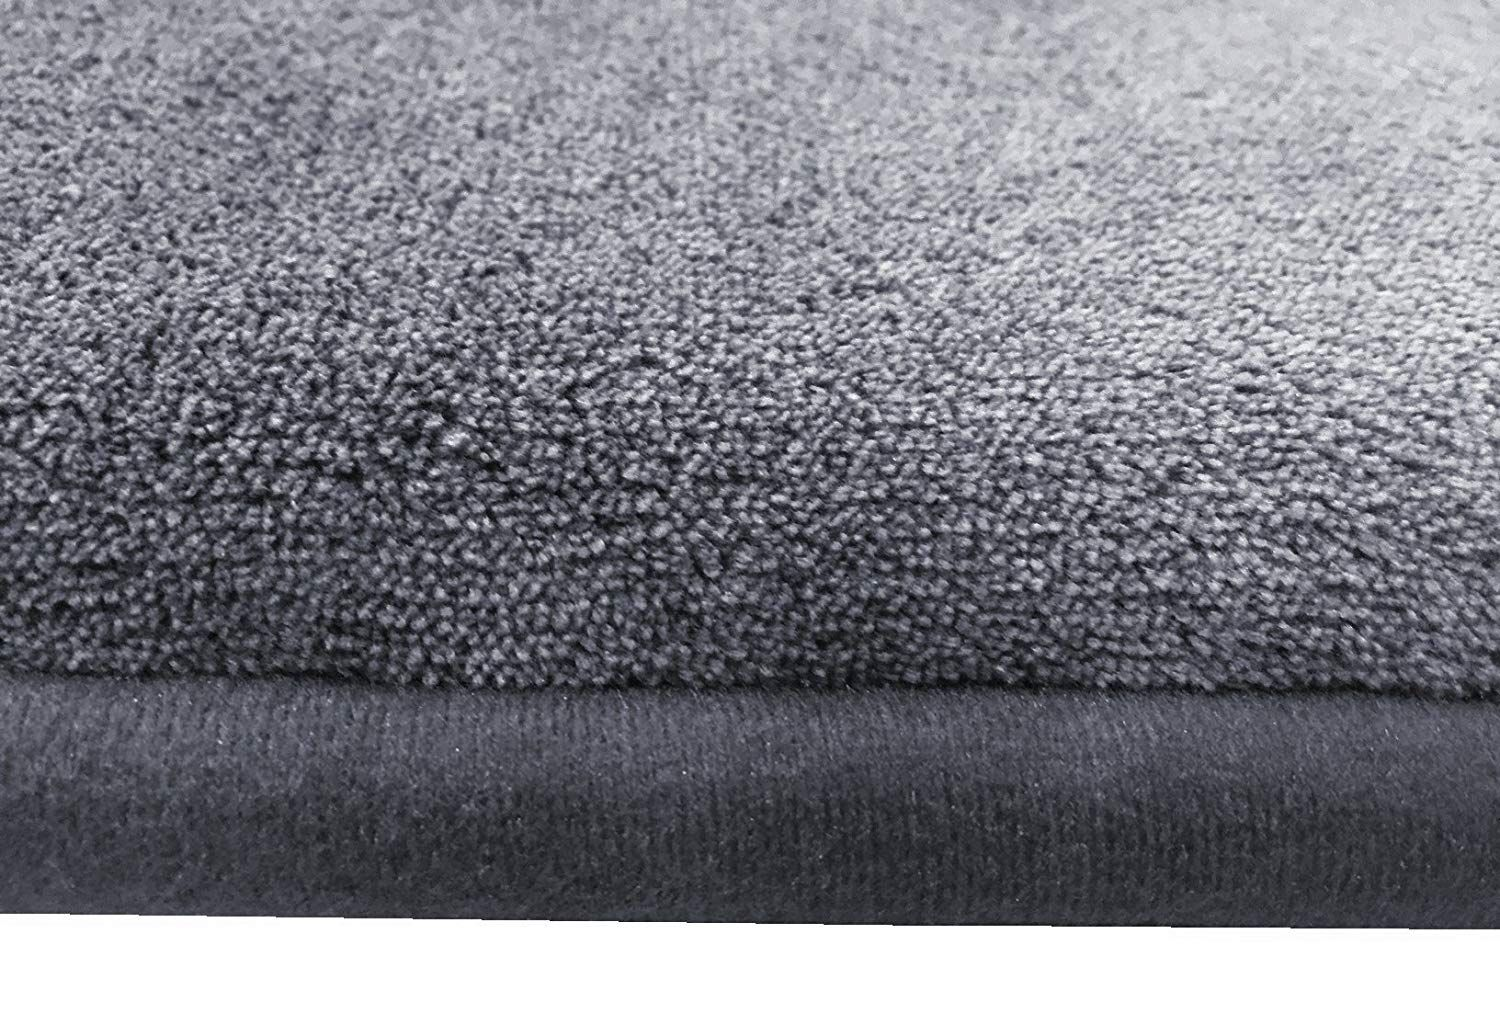 Dogbed4less Memory Foam Gel Cooling Luxury Pet Dog Bed Mat Pillow Topper Xl Large 48 X30 Crate Size Grey Color Cl Dog Bed Mat Diy Dog Bed Dog Bed Furniture